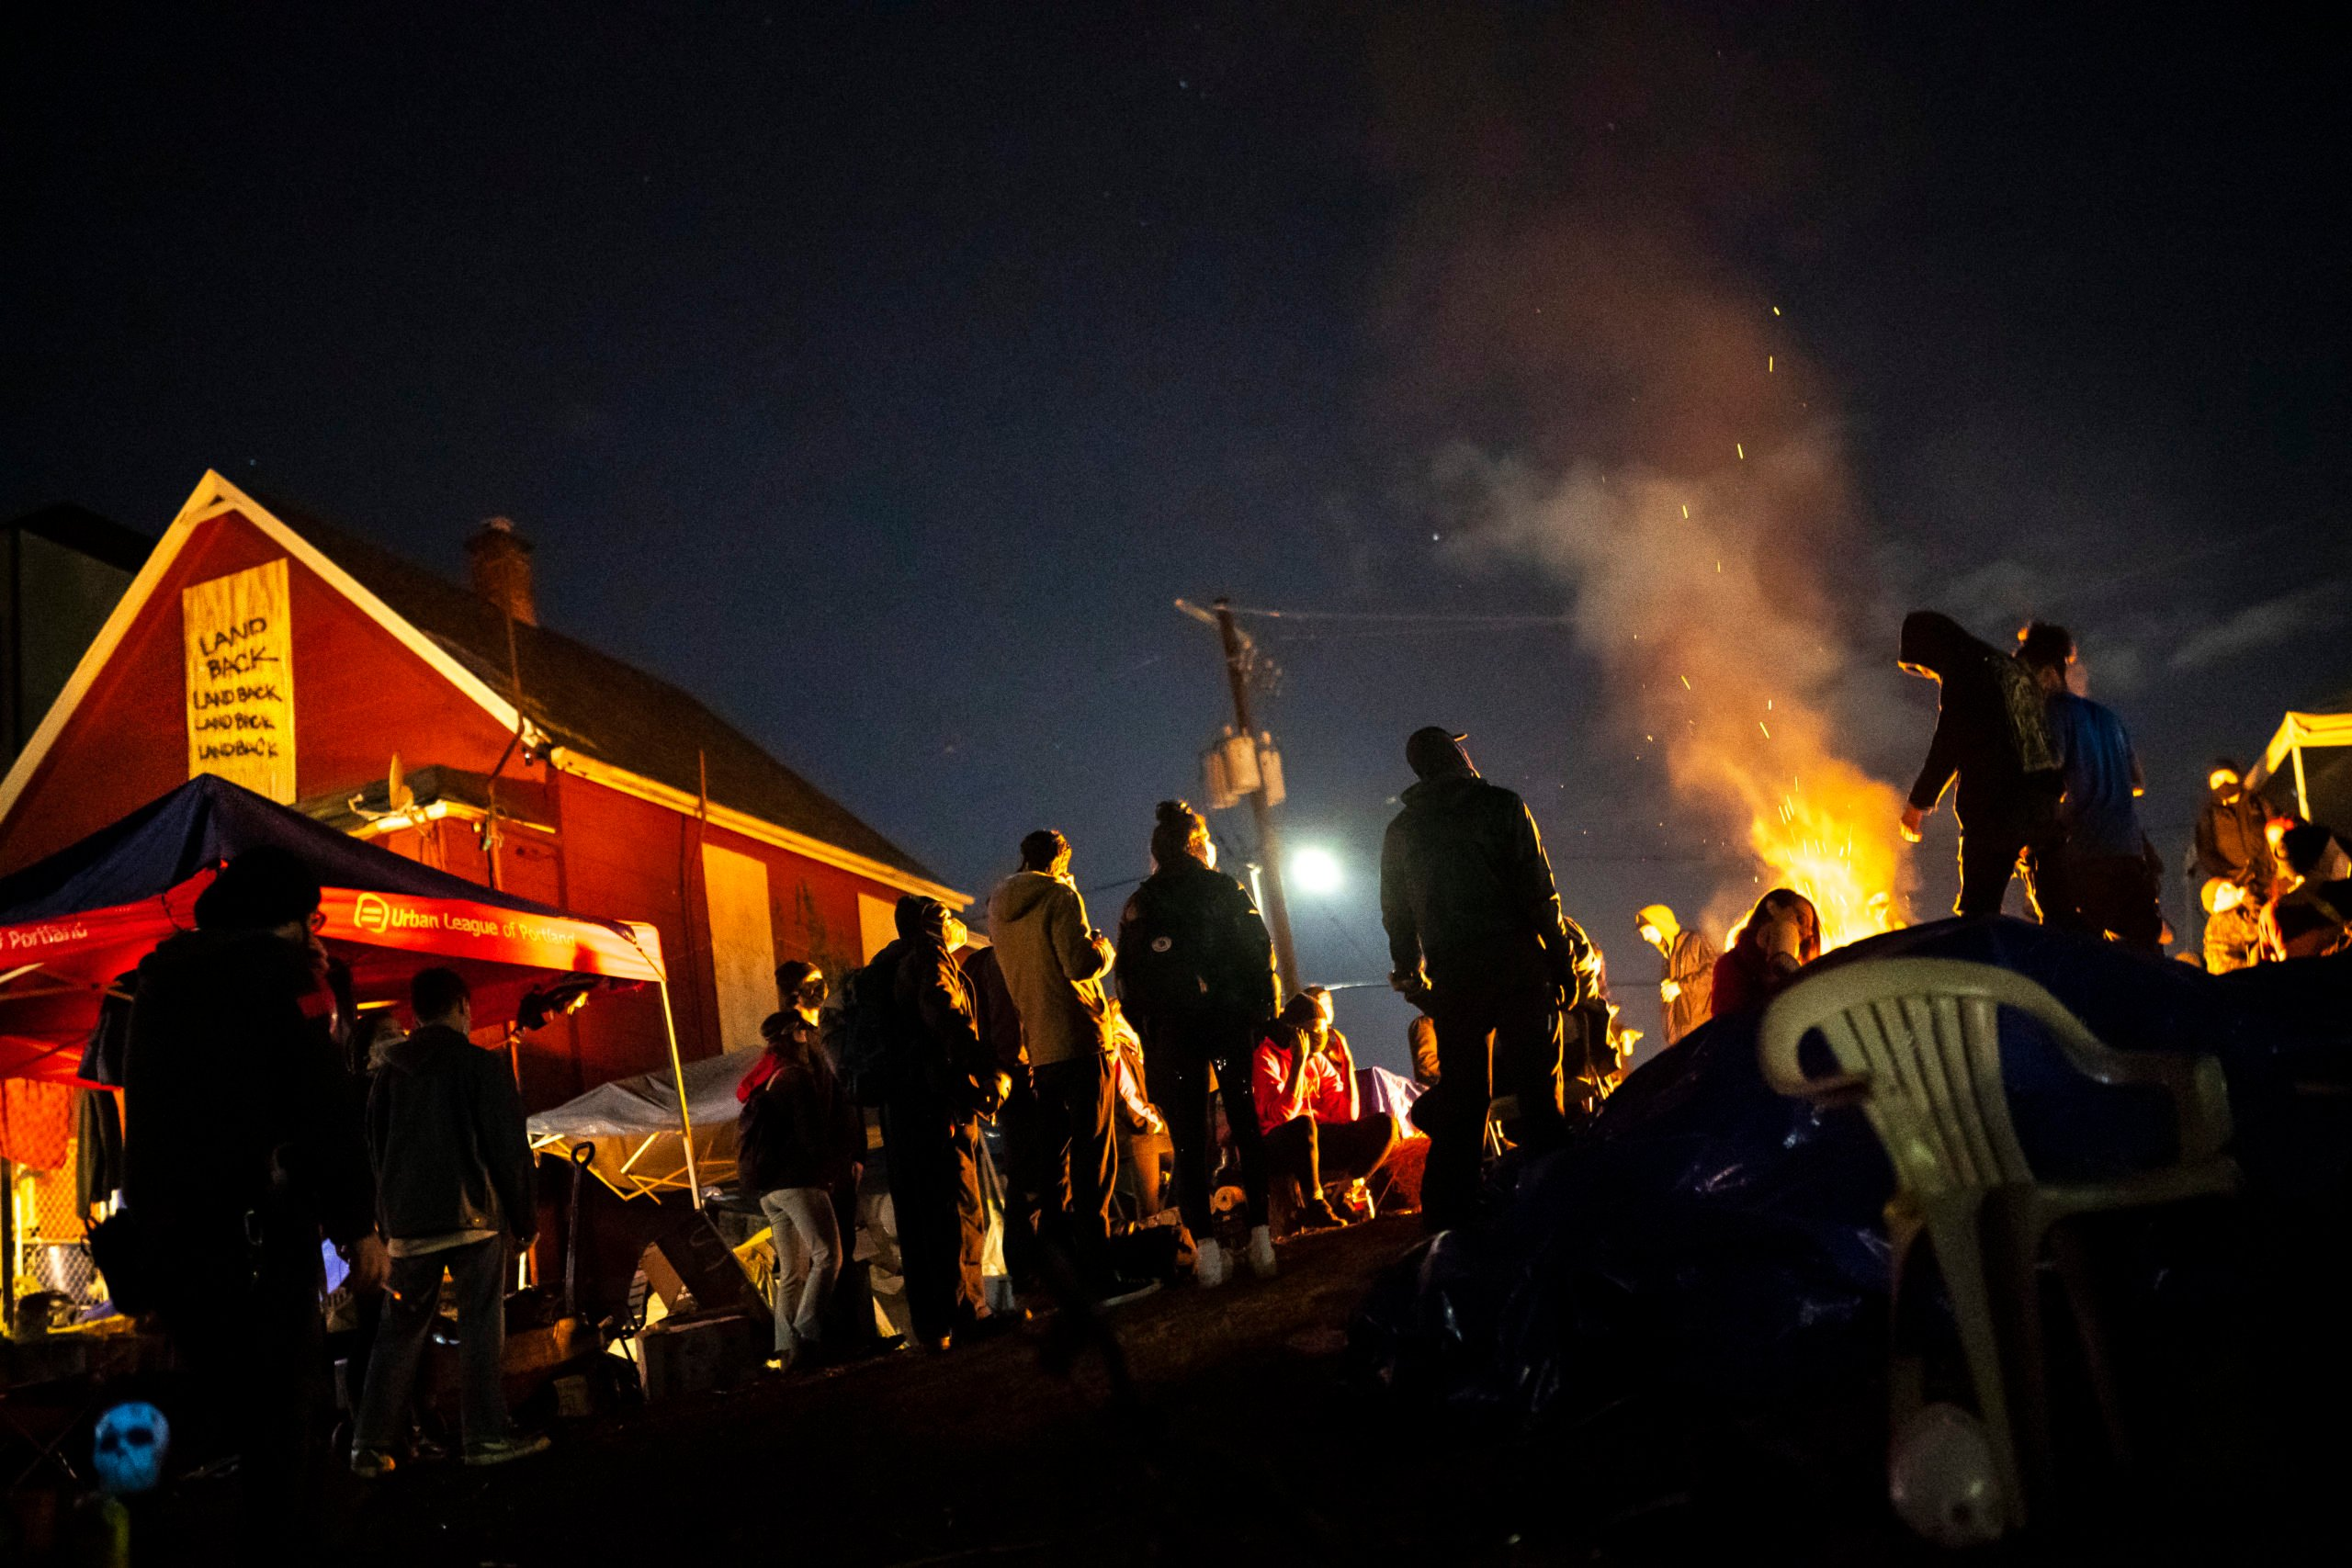 Protesters plan their next action while standing around a fire near the Red House on Mississippi Street on December 9, 2020 in Portland, Oregon. (Nathan Howard/Getty Images)